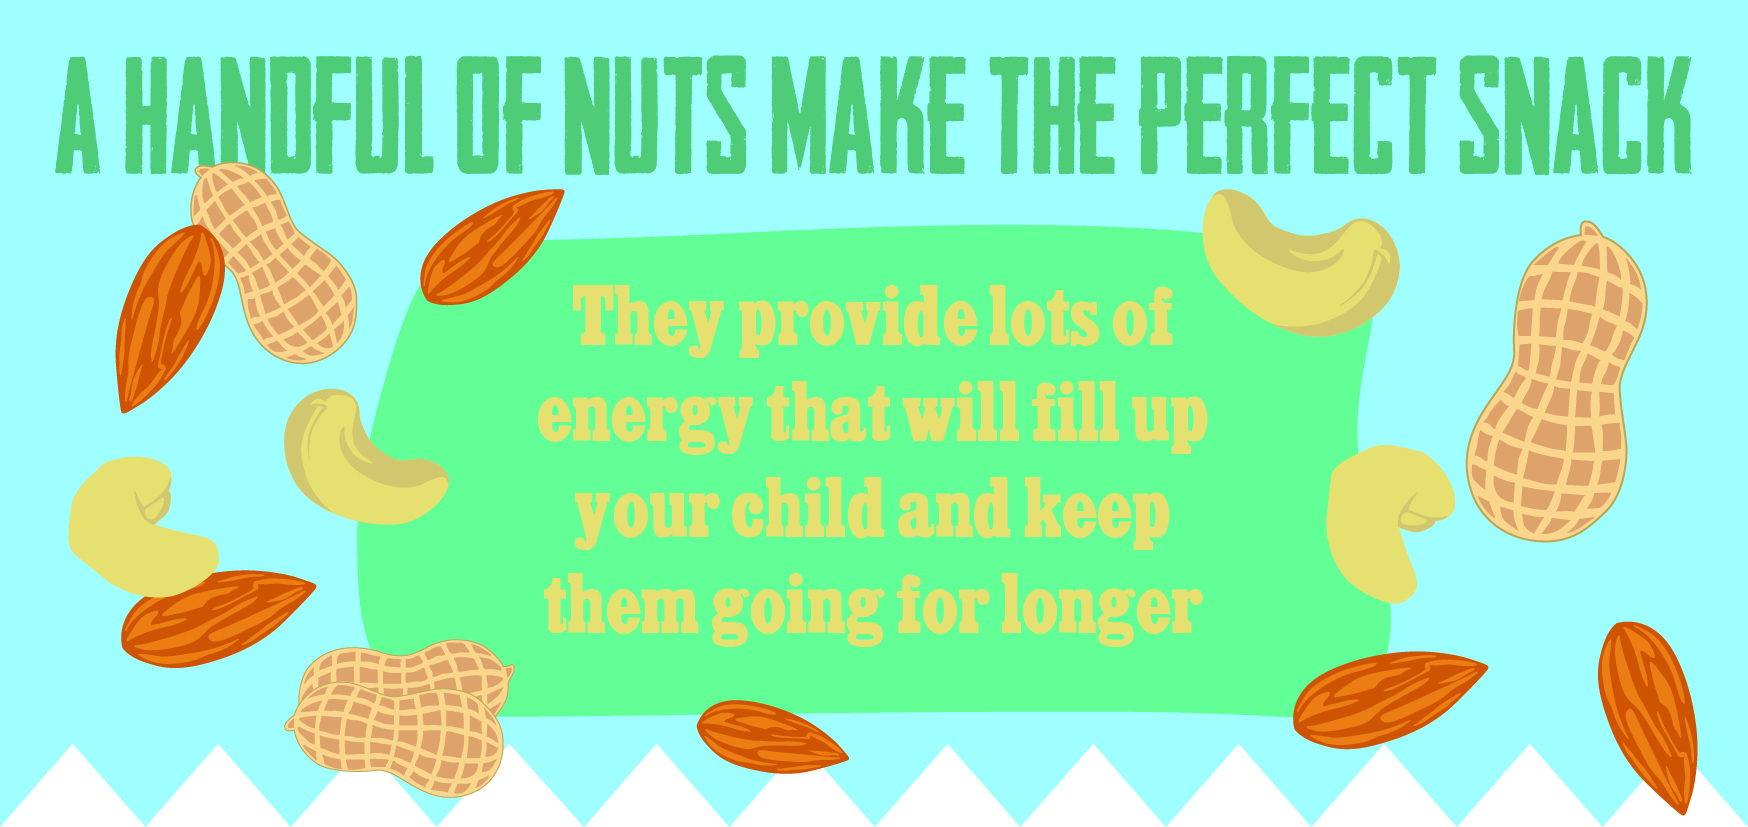 A handful of nuts makes the perfect snack.